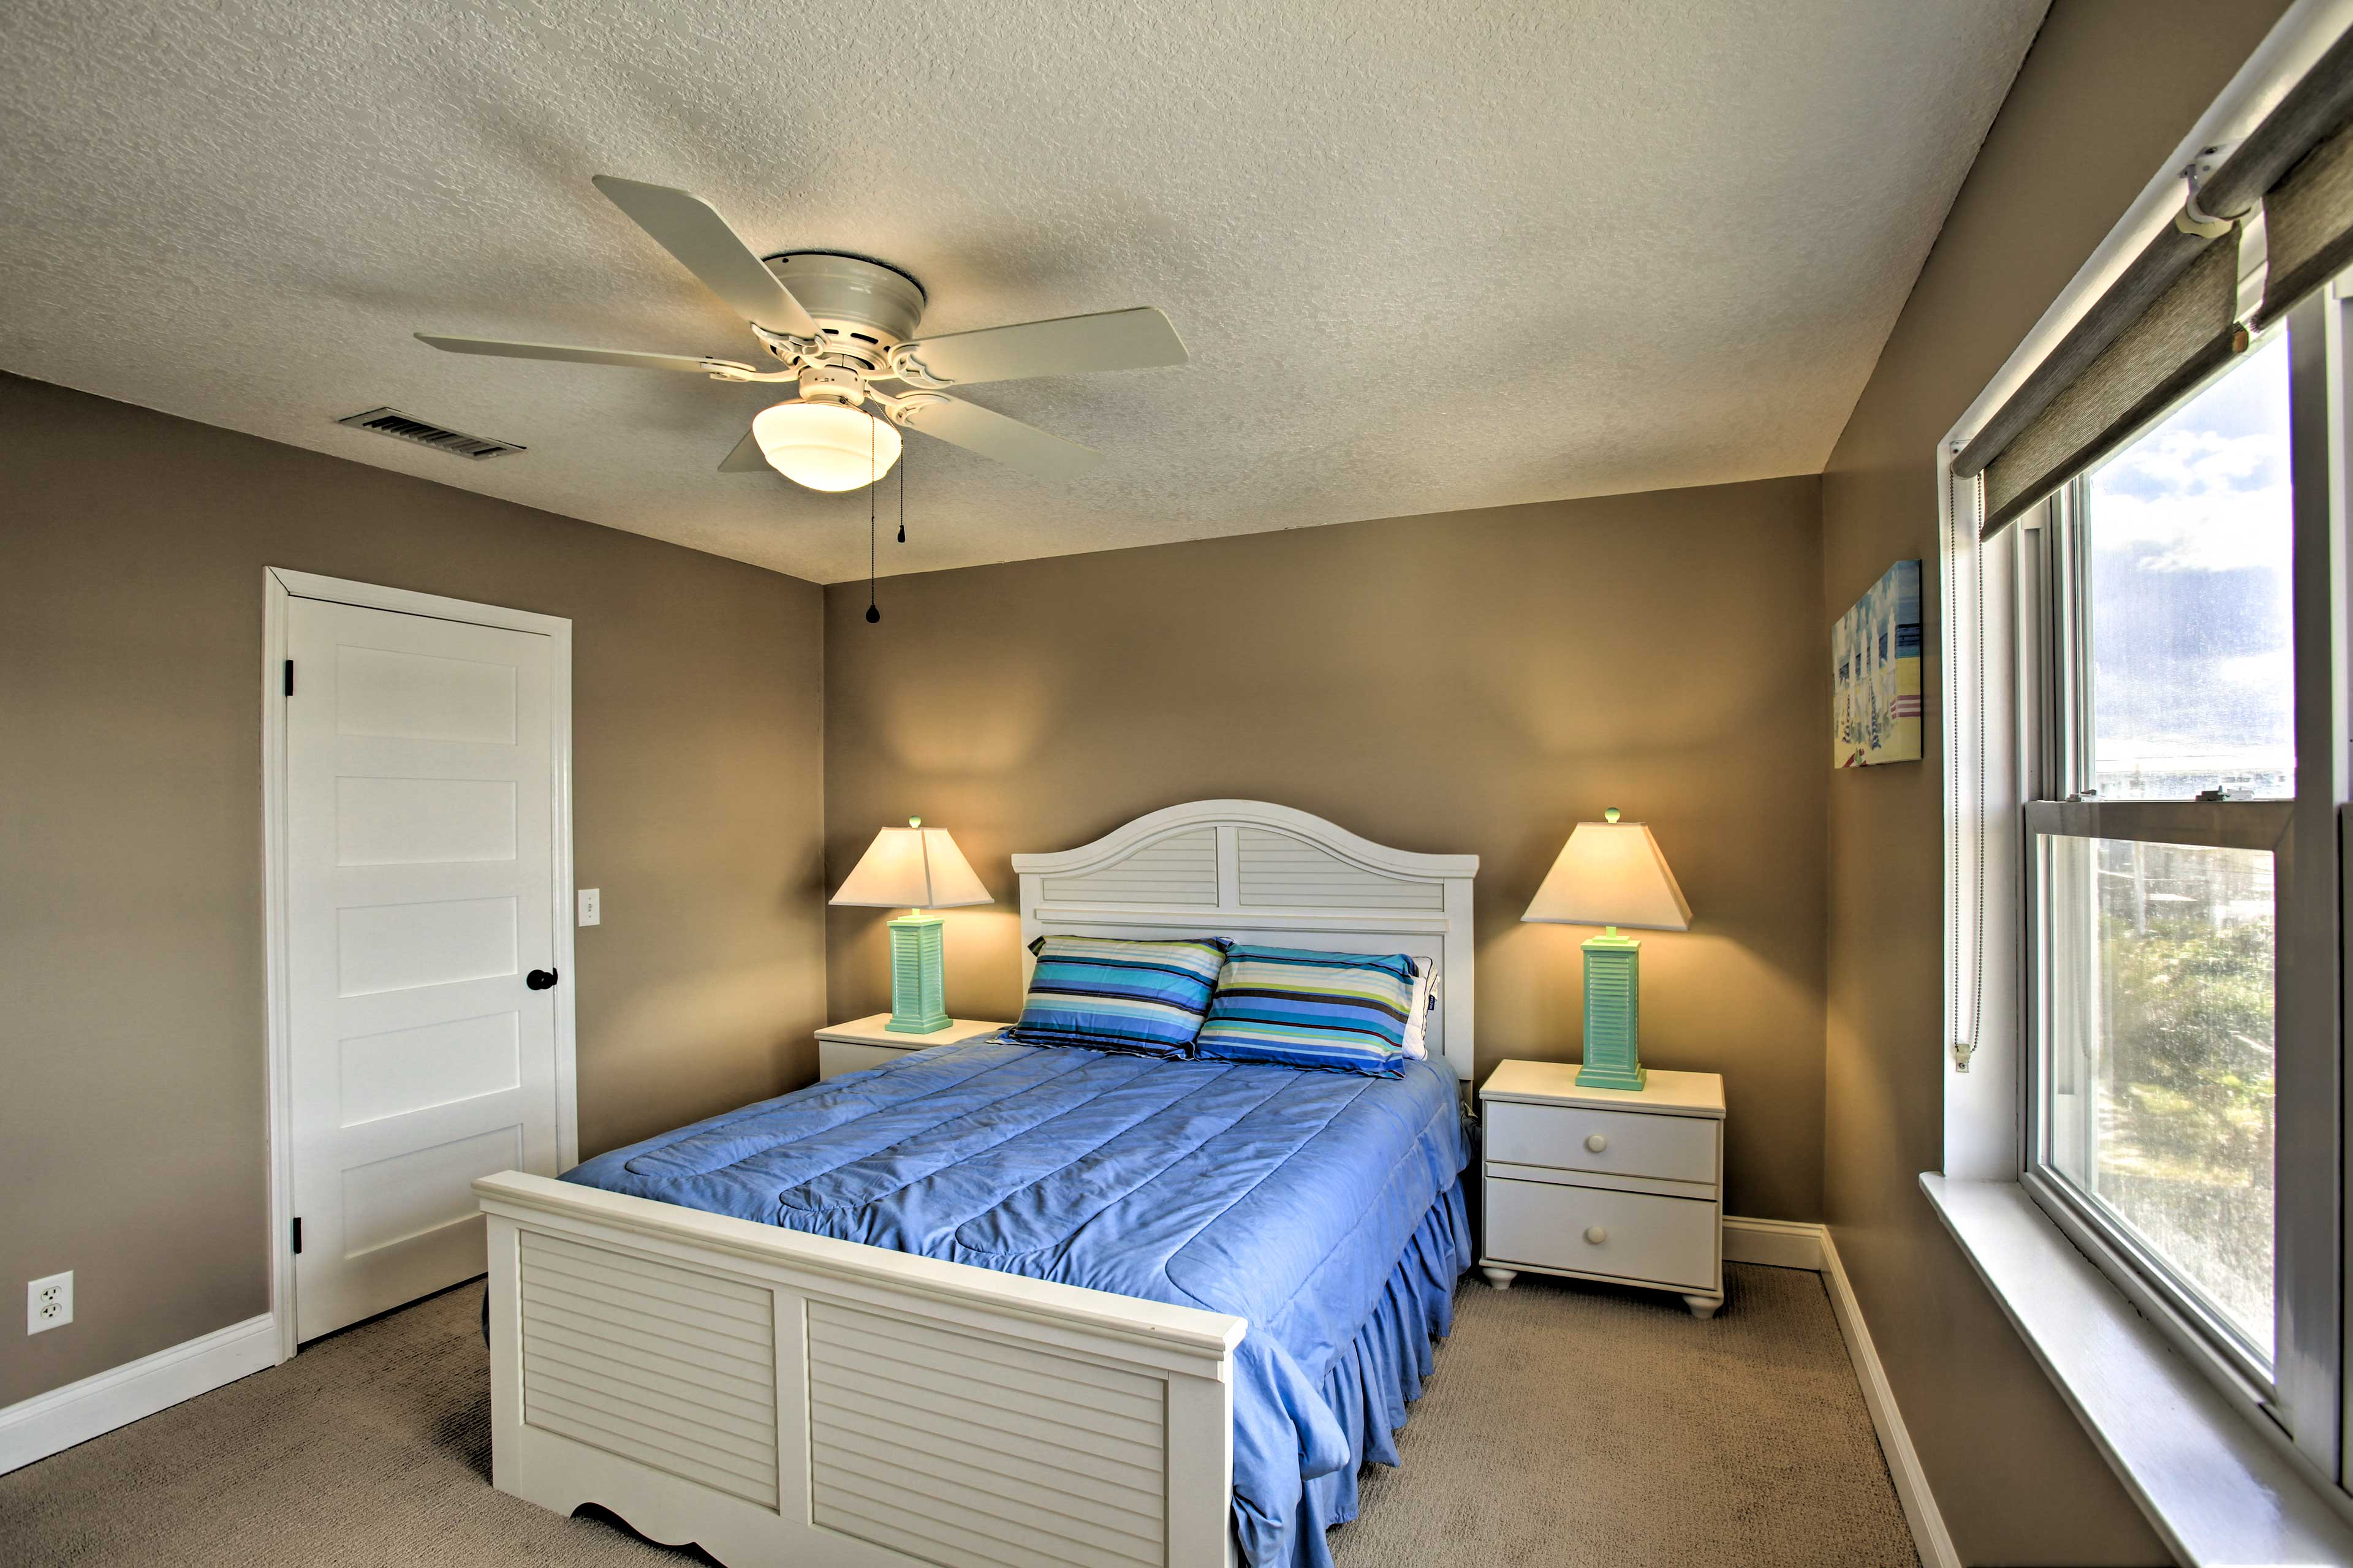 Stay cool as you drift off to sleep beneath the ceiling fan.